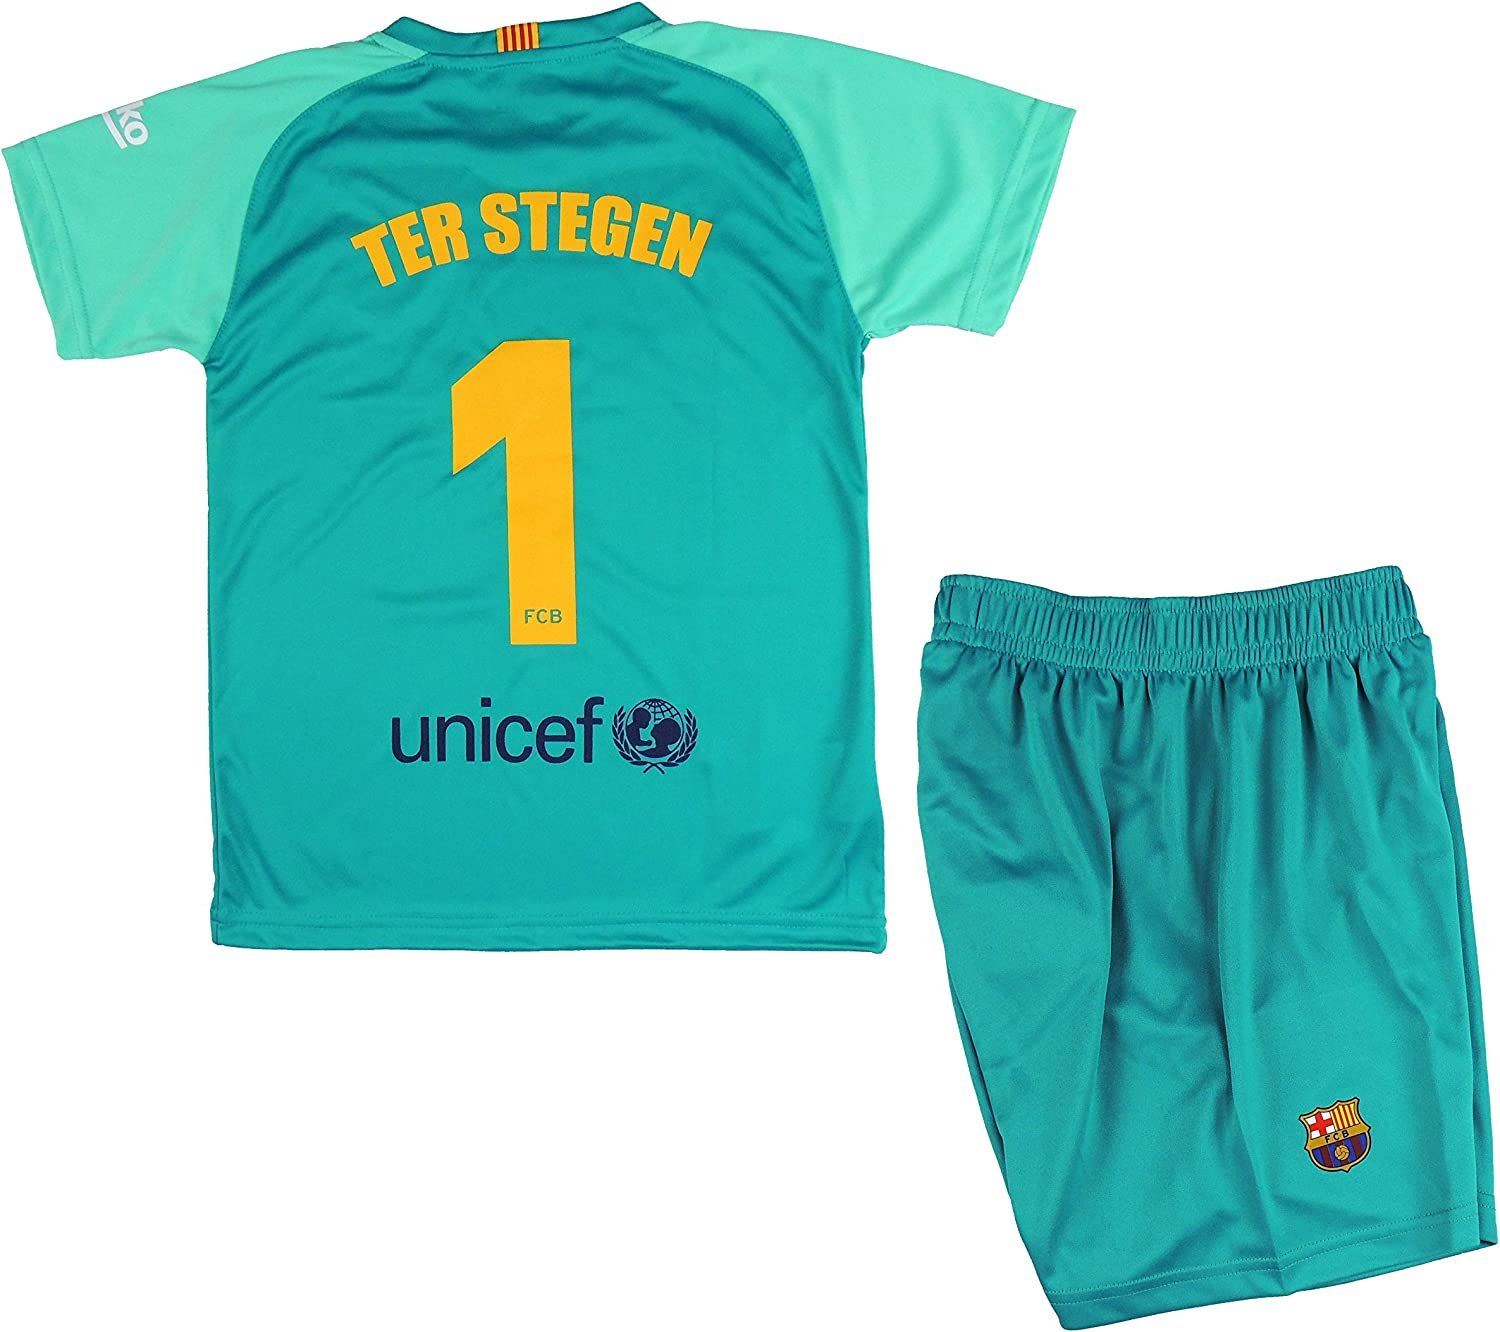 Fcb Set T Shirt And Pants Primera Away Child Ter Stegen Of The Fc Barcelona Product Official Licensed Season 2019 2020 Colour Green Green Size 8 Amazon Co Uk Clothing